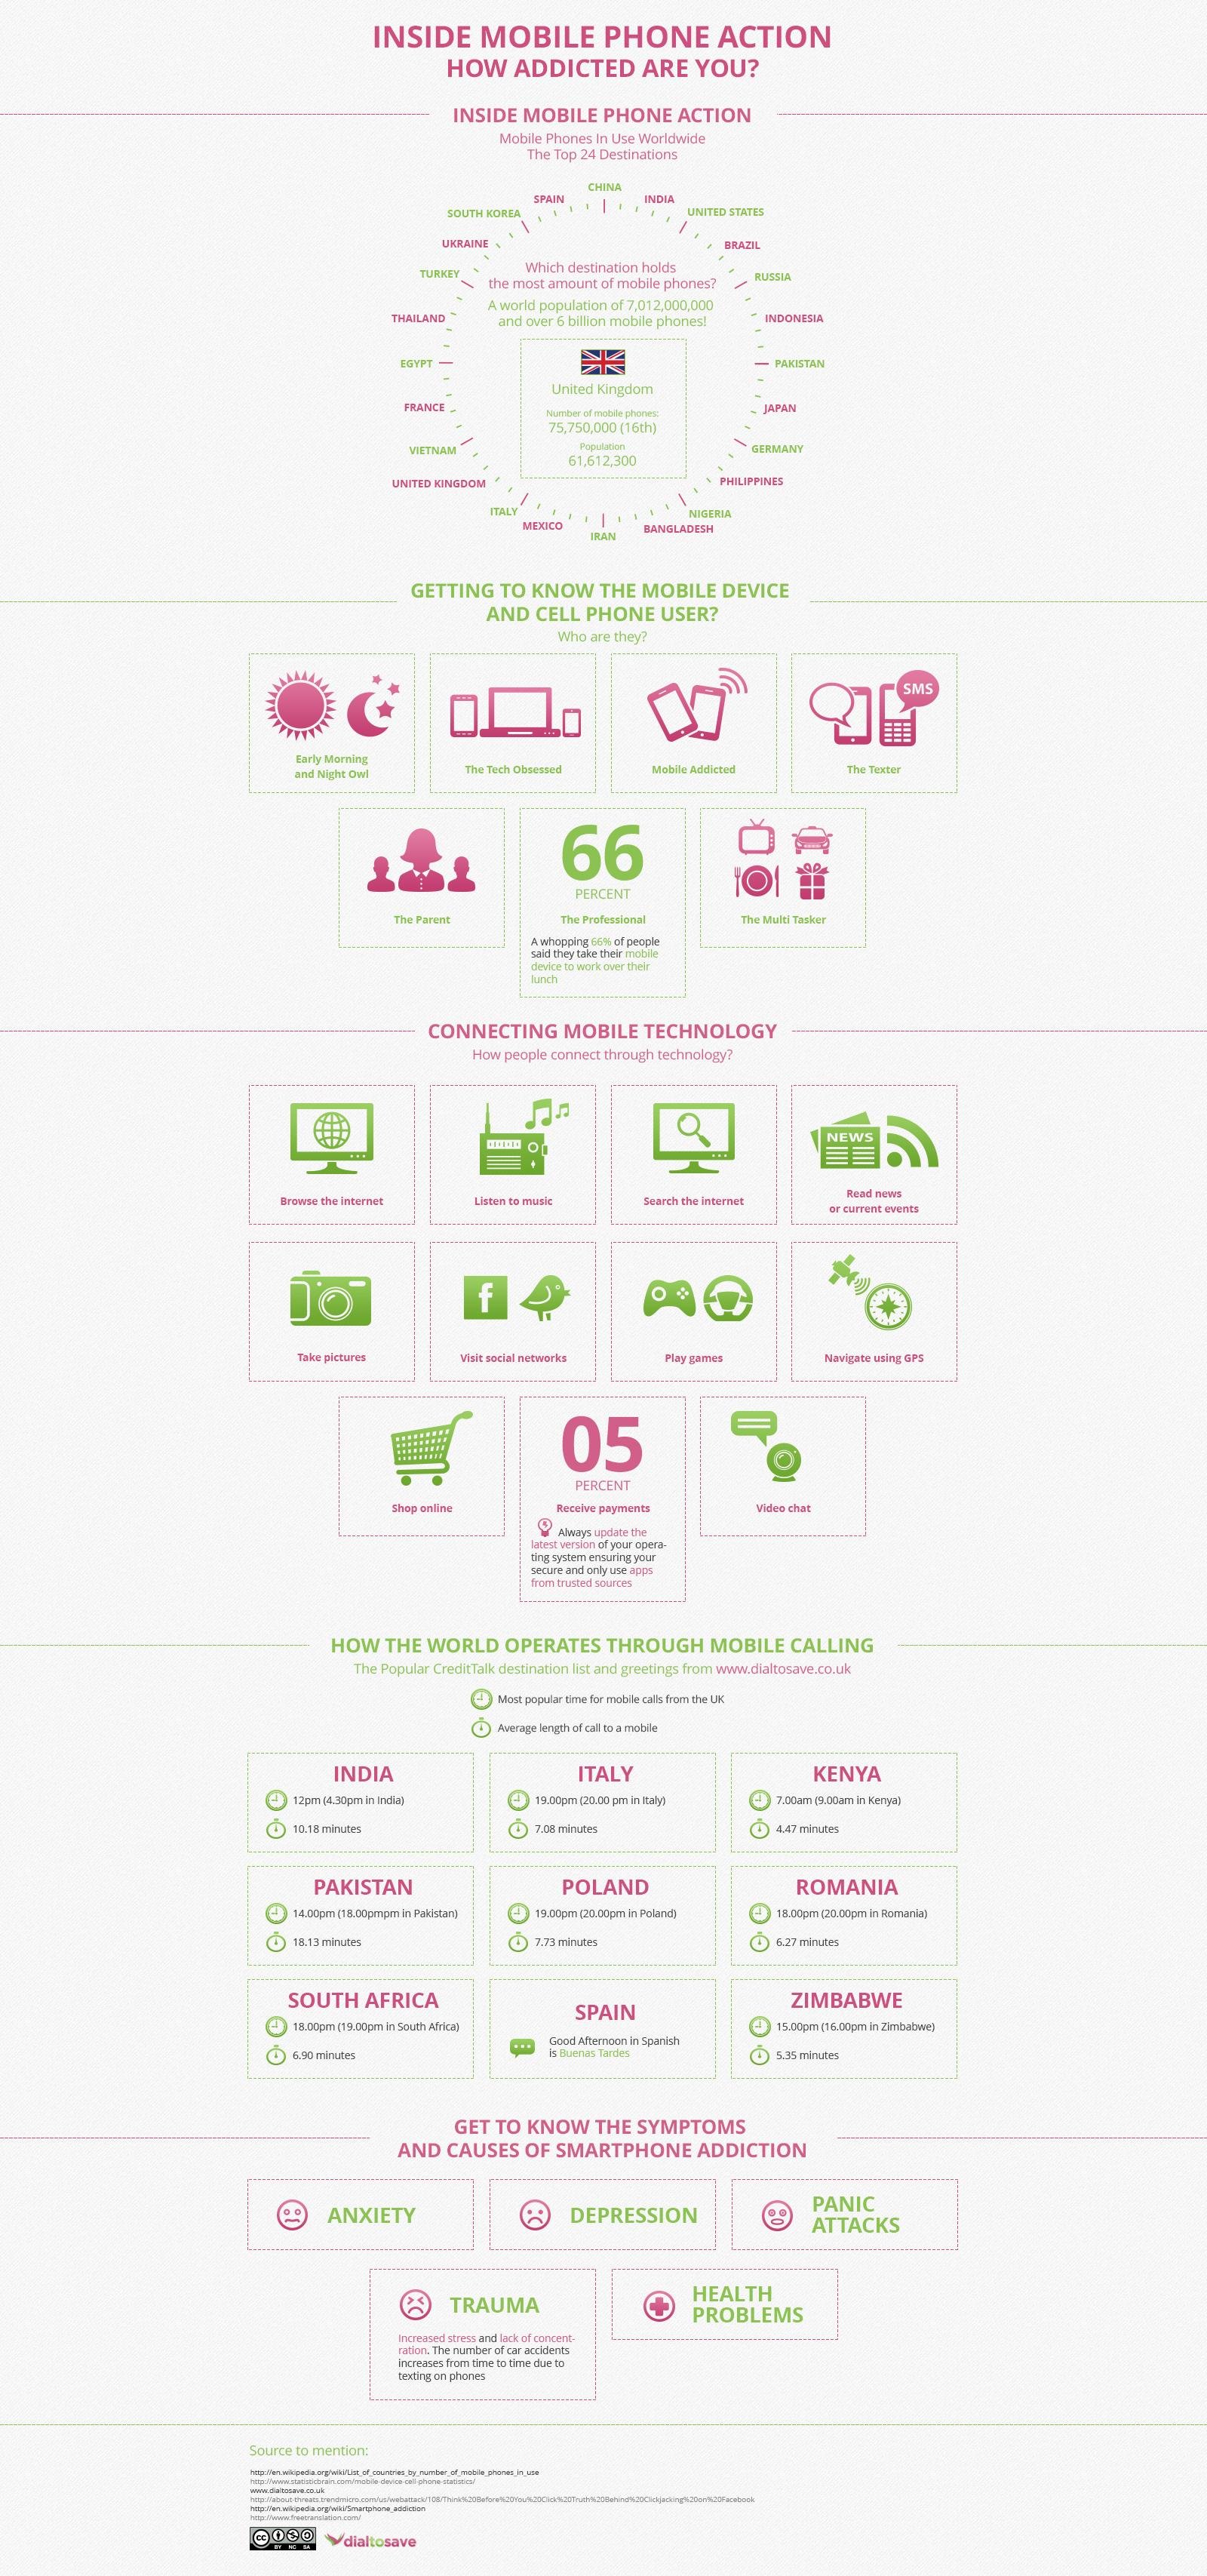 Inside Mobile Phone Action - How Addicted Are You? (Infographic)